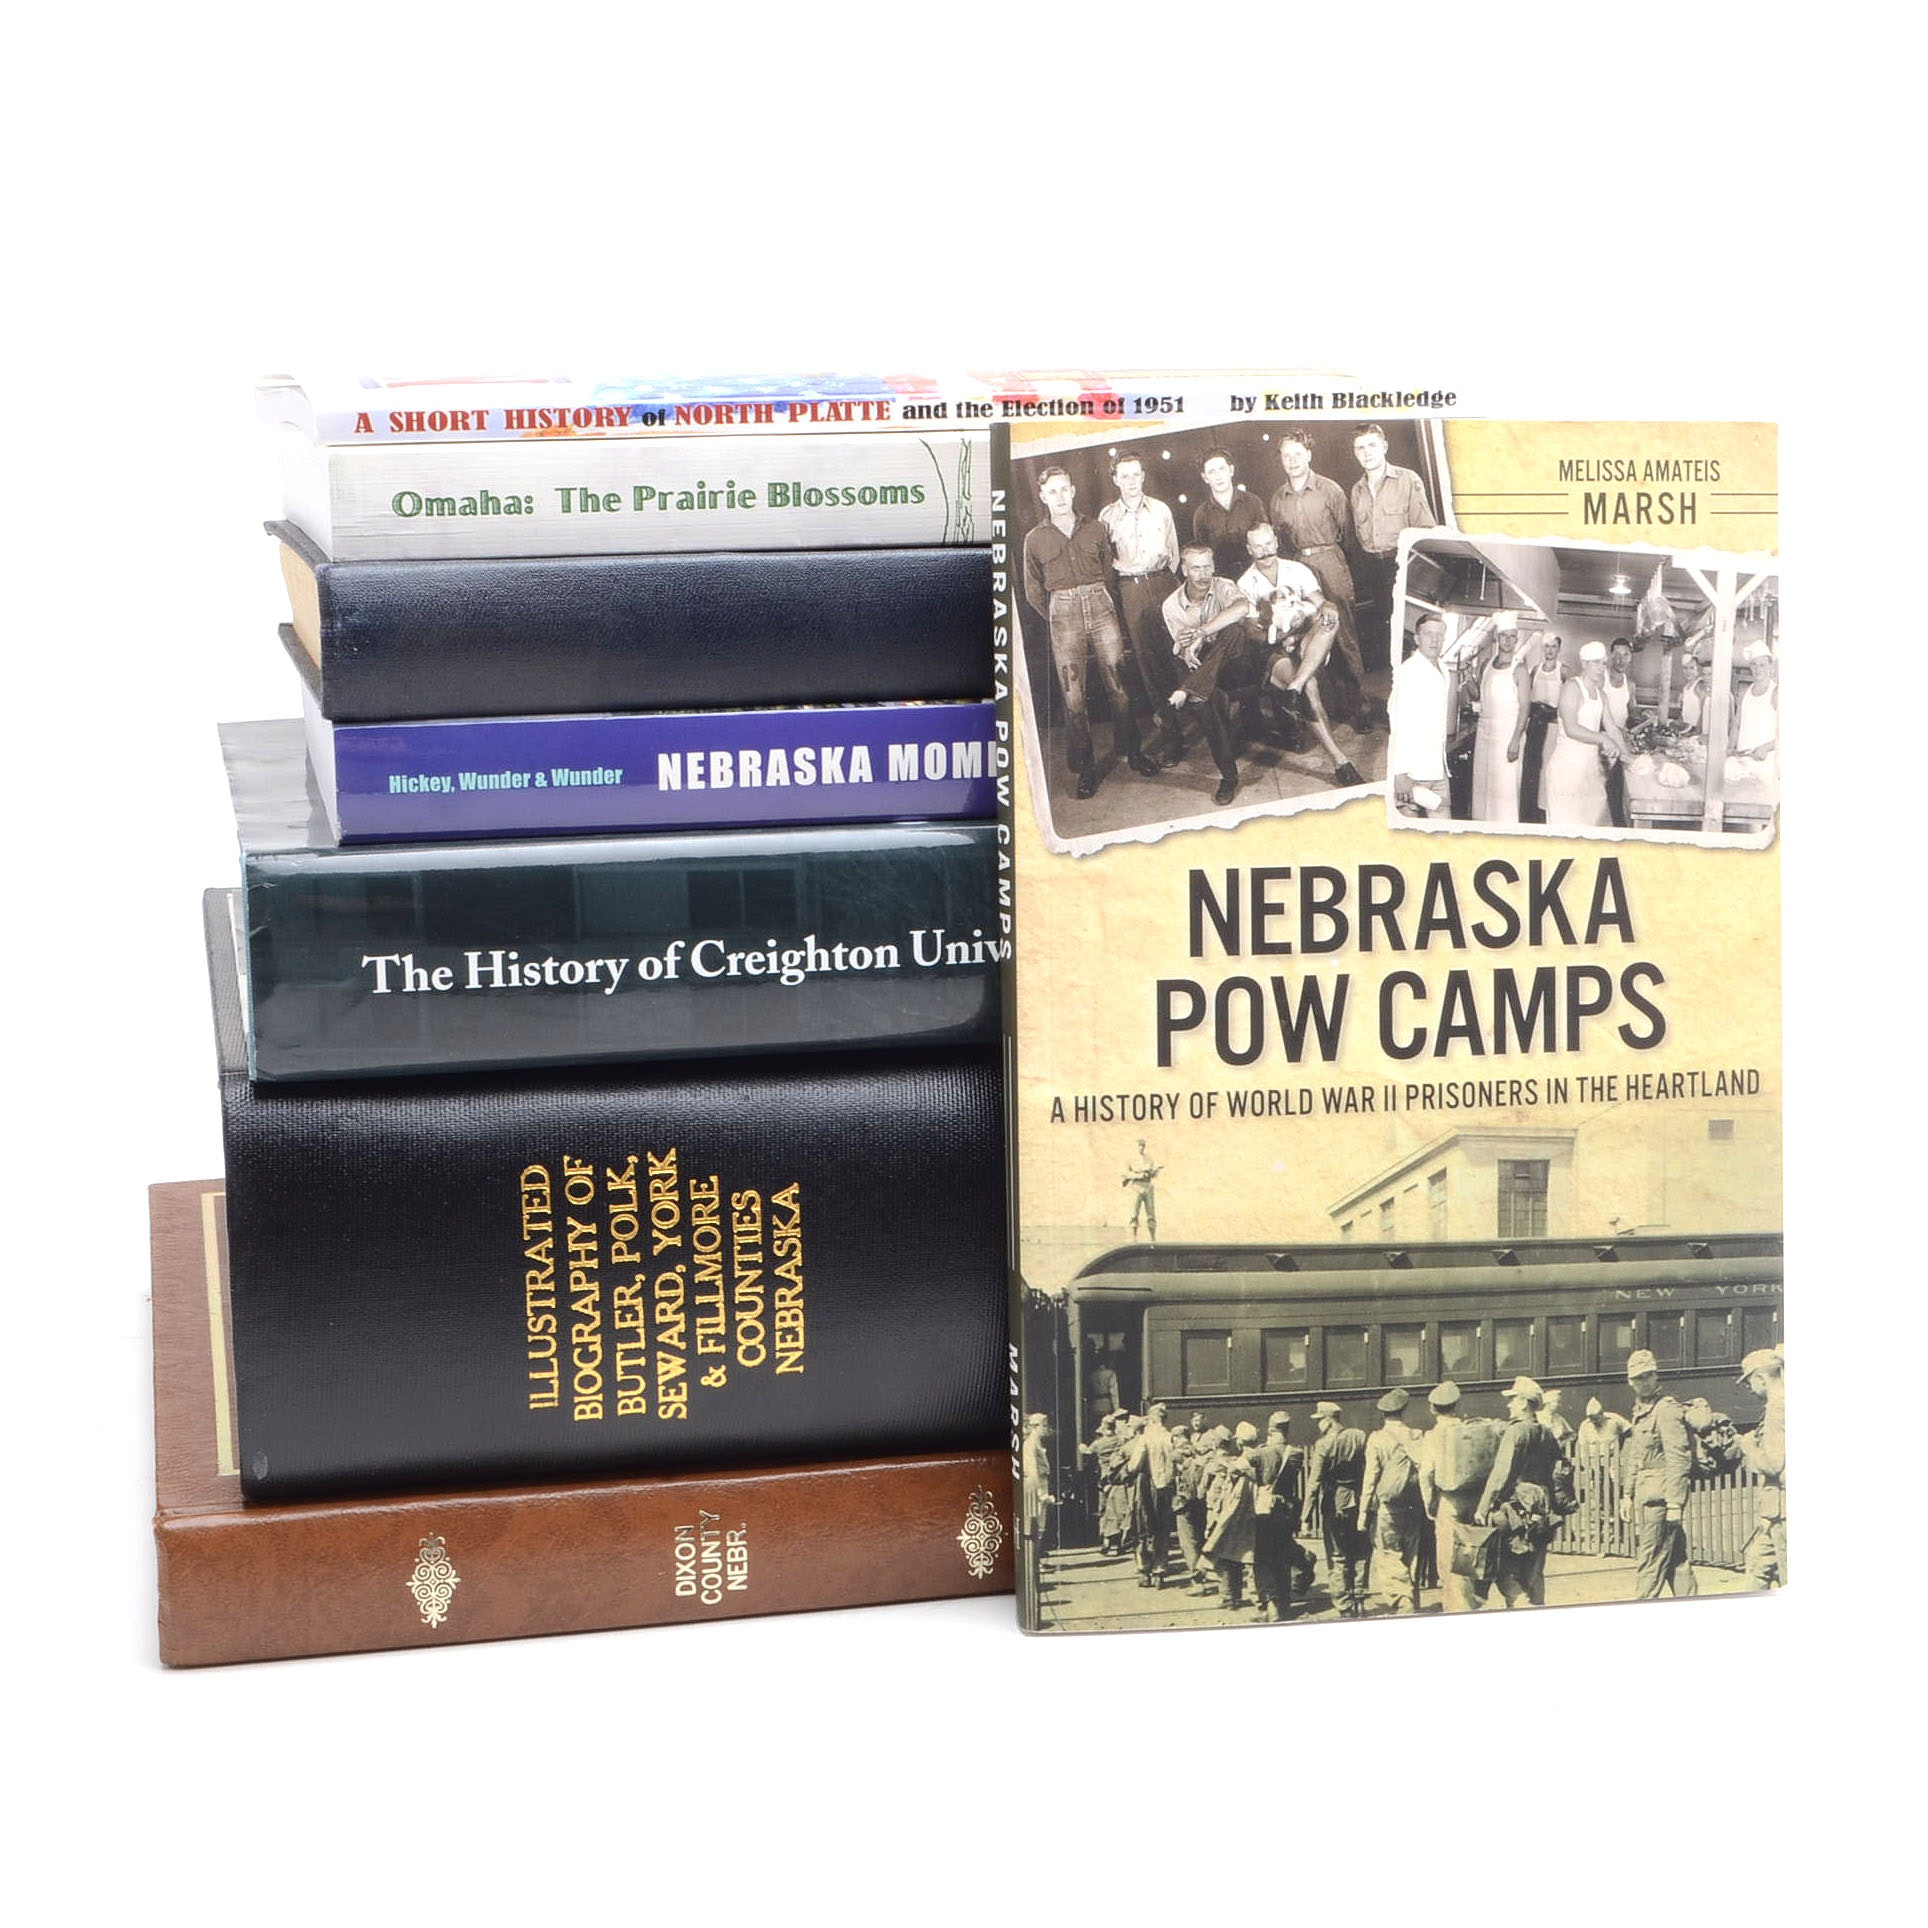 Collection of Books on Nebraska History